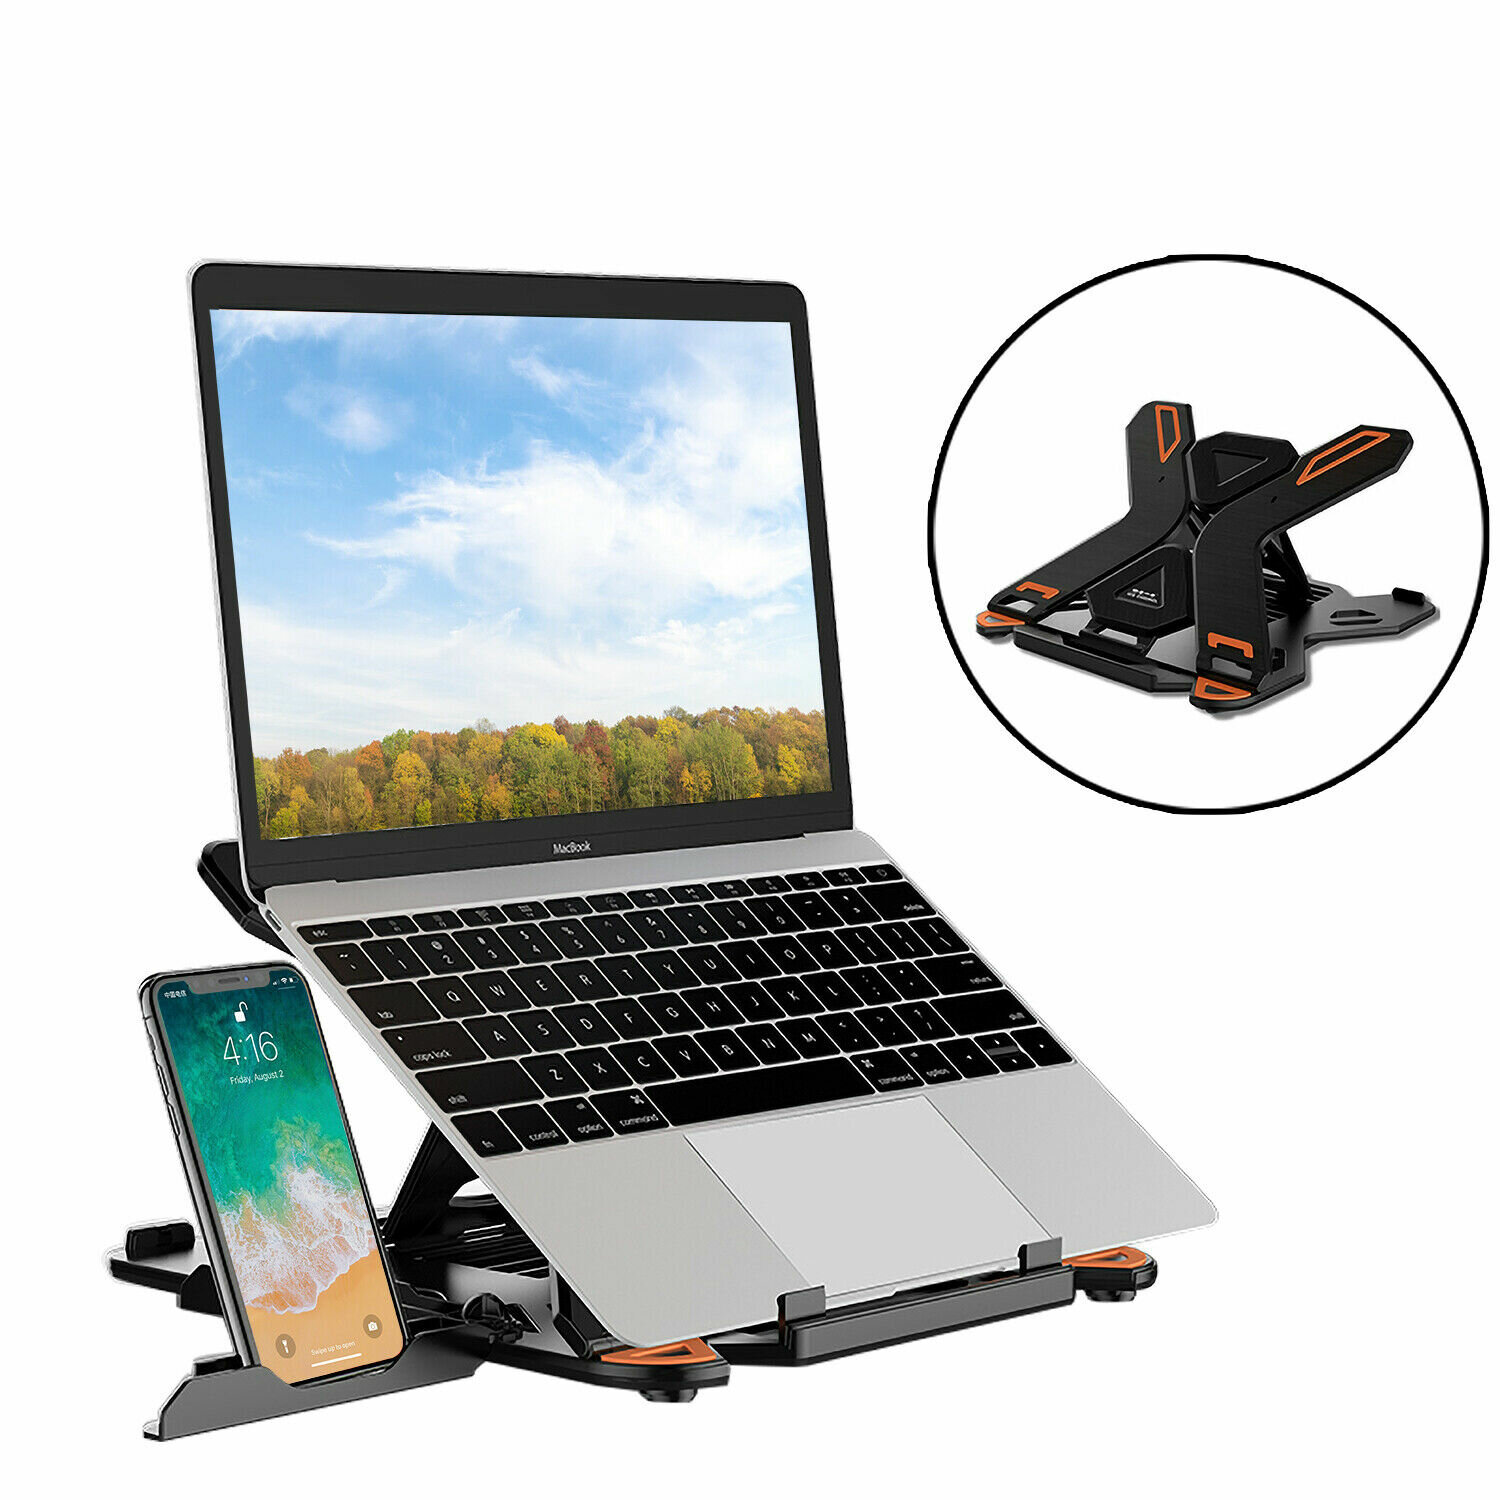 E5 Portable Laptop Stand Adjustable Computer Stand with Phone Holder for Notebook фото